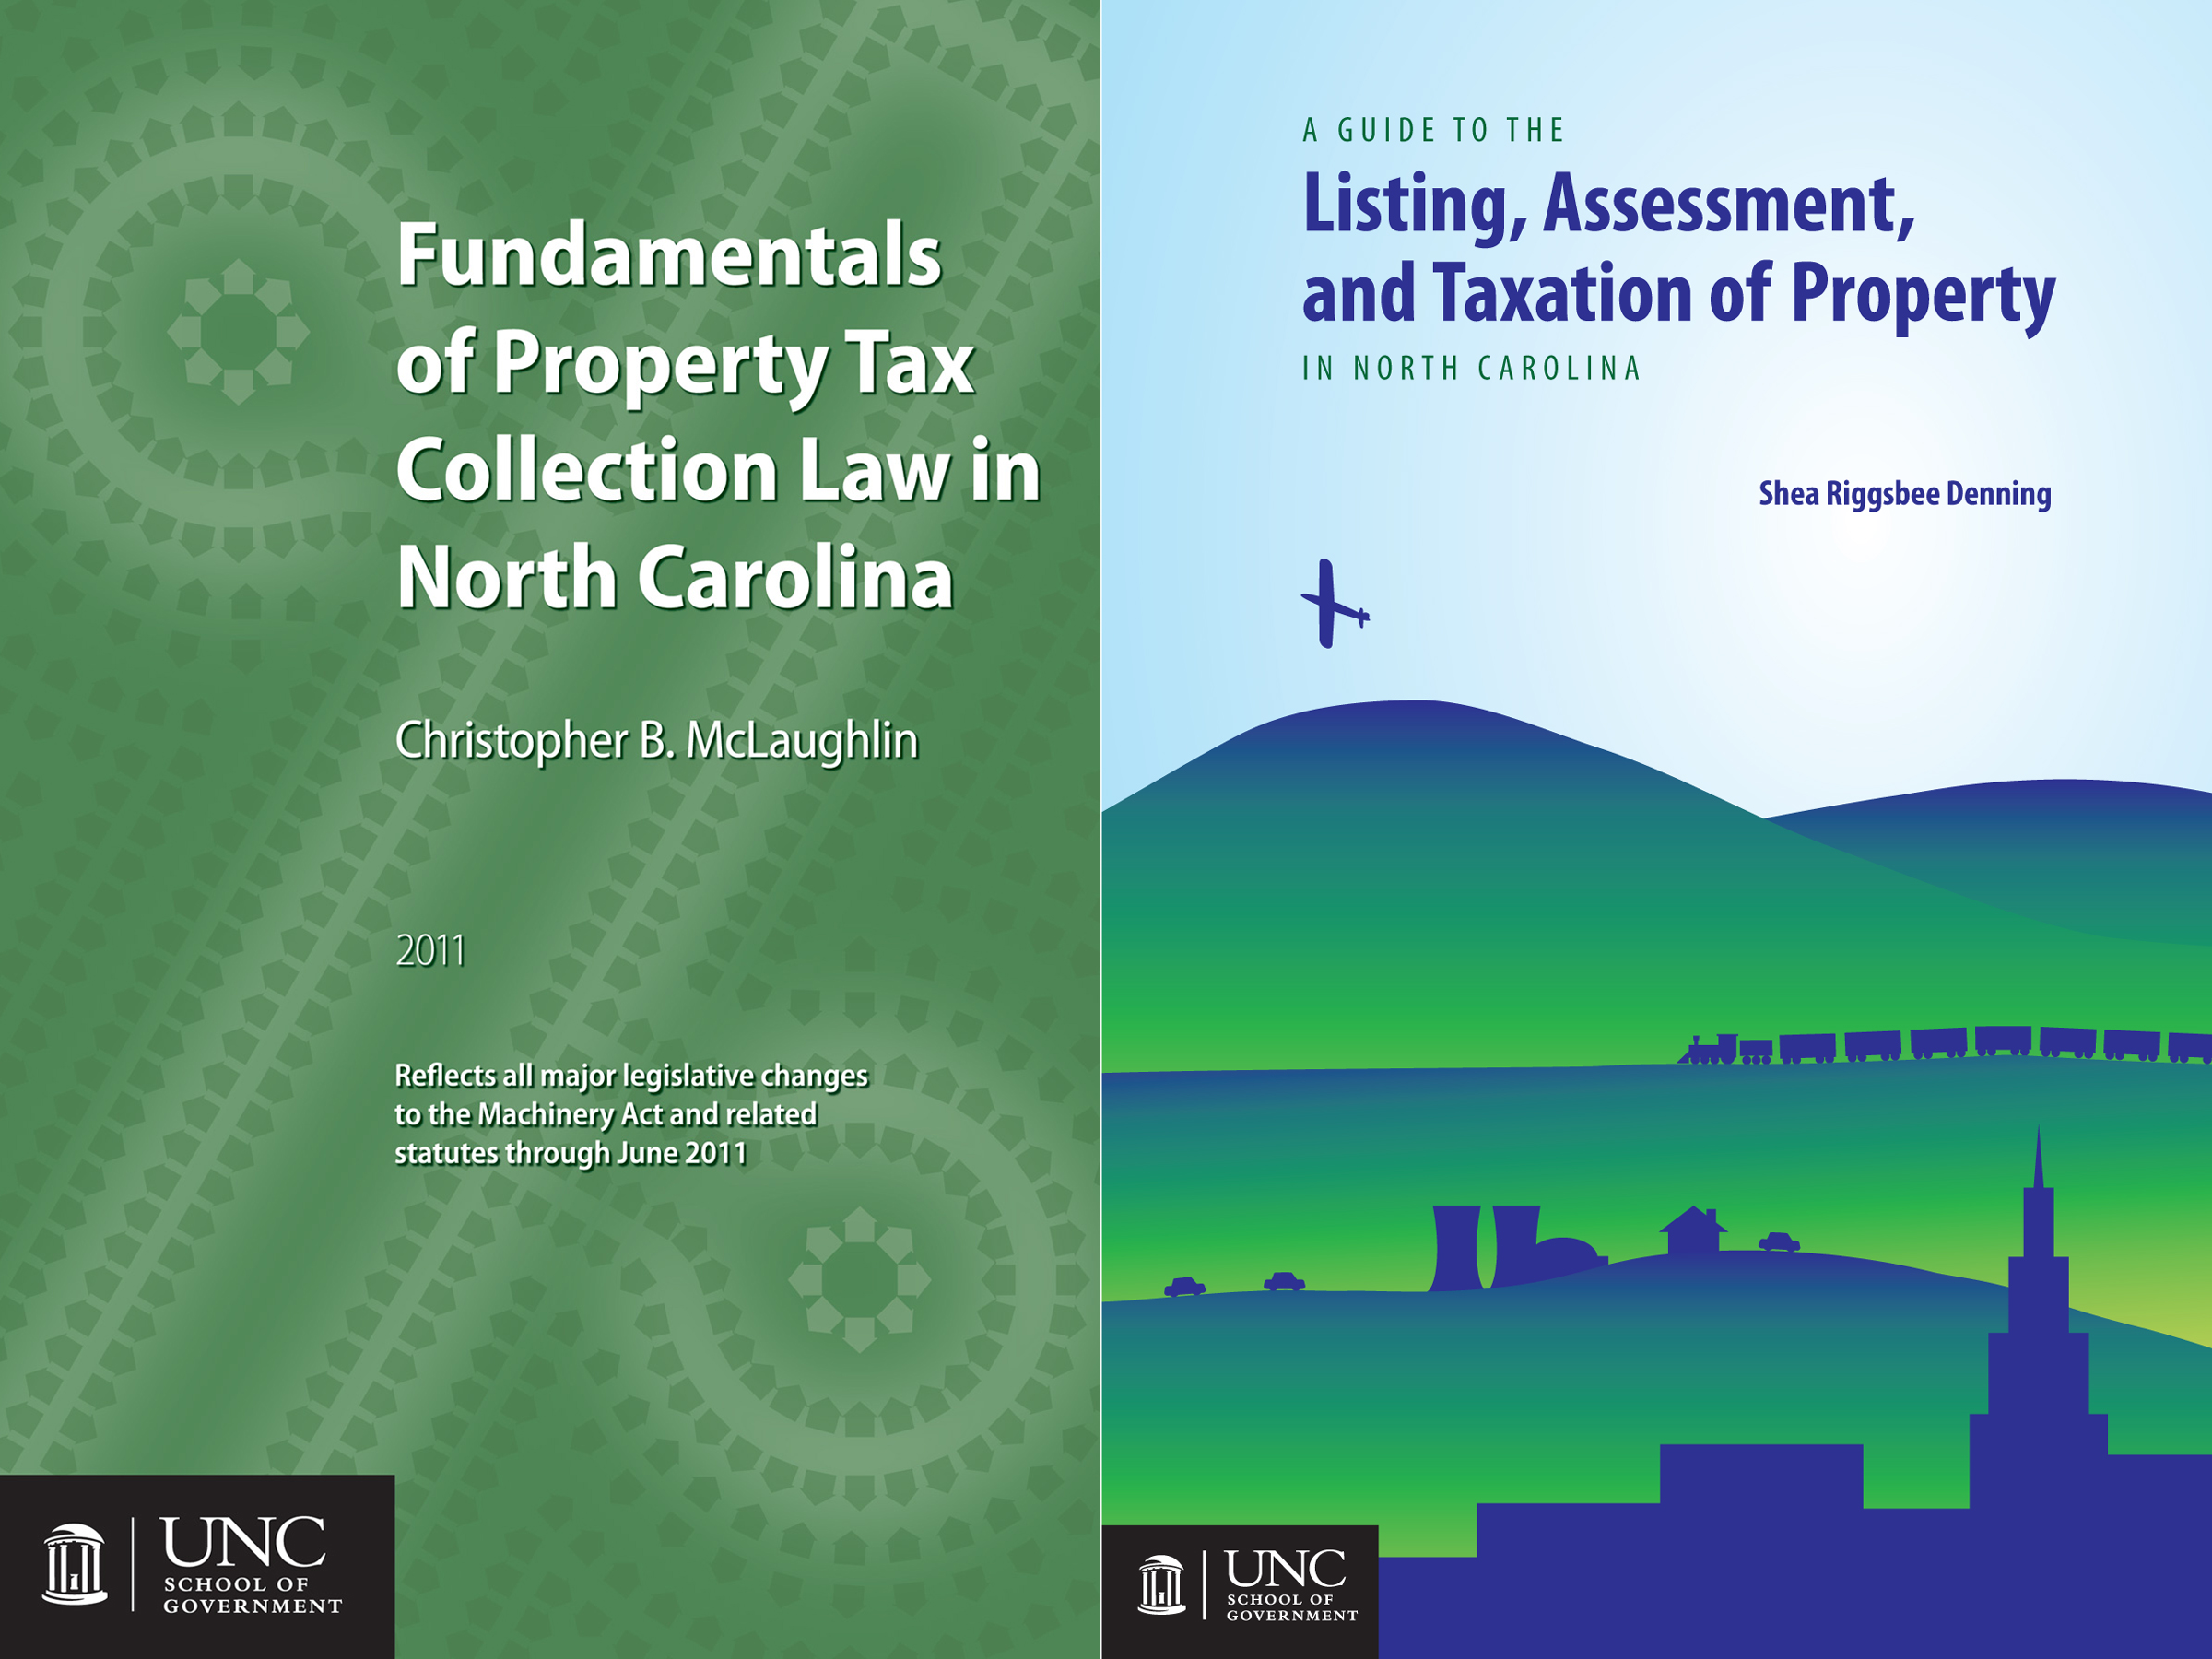 Cover image for Fundamentals of Property Tax Collection Law in NC & Guide to the Listing, Assessment, and Taxation of Property in NC: Package of Two Books